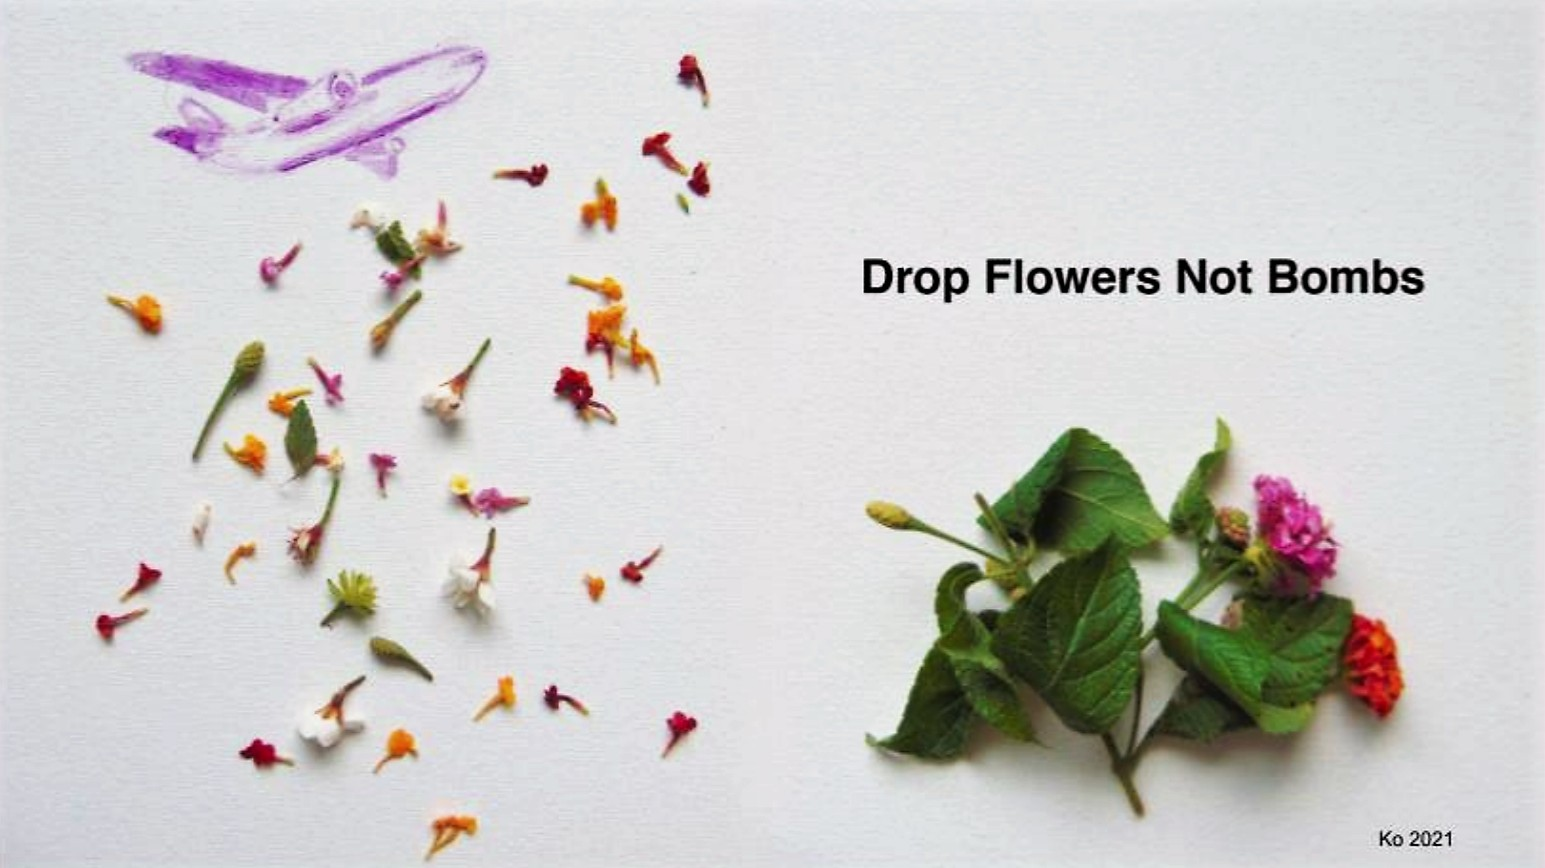 Airplane dropping flowers